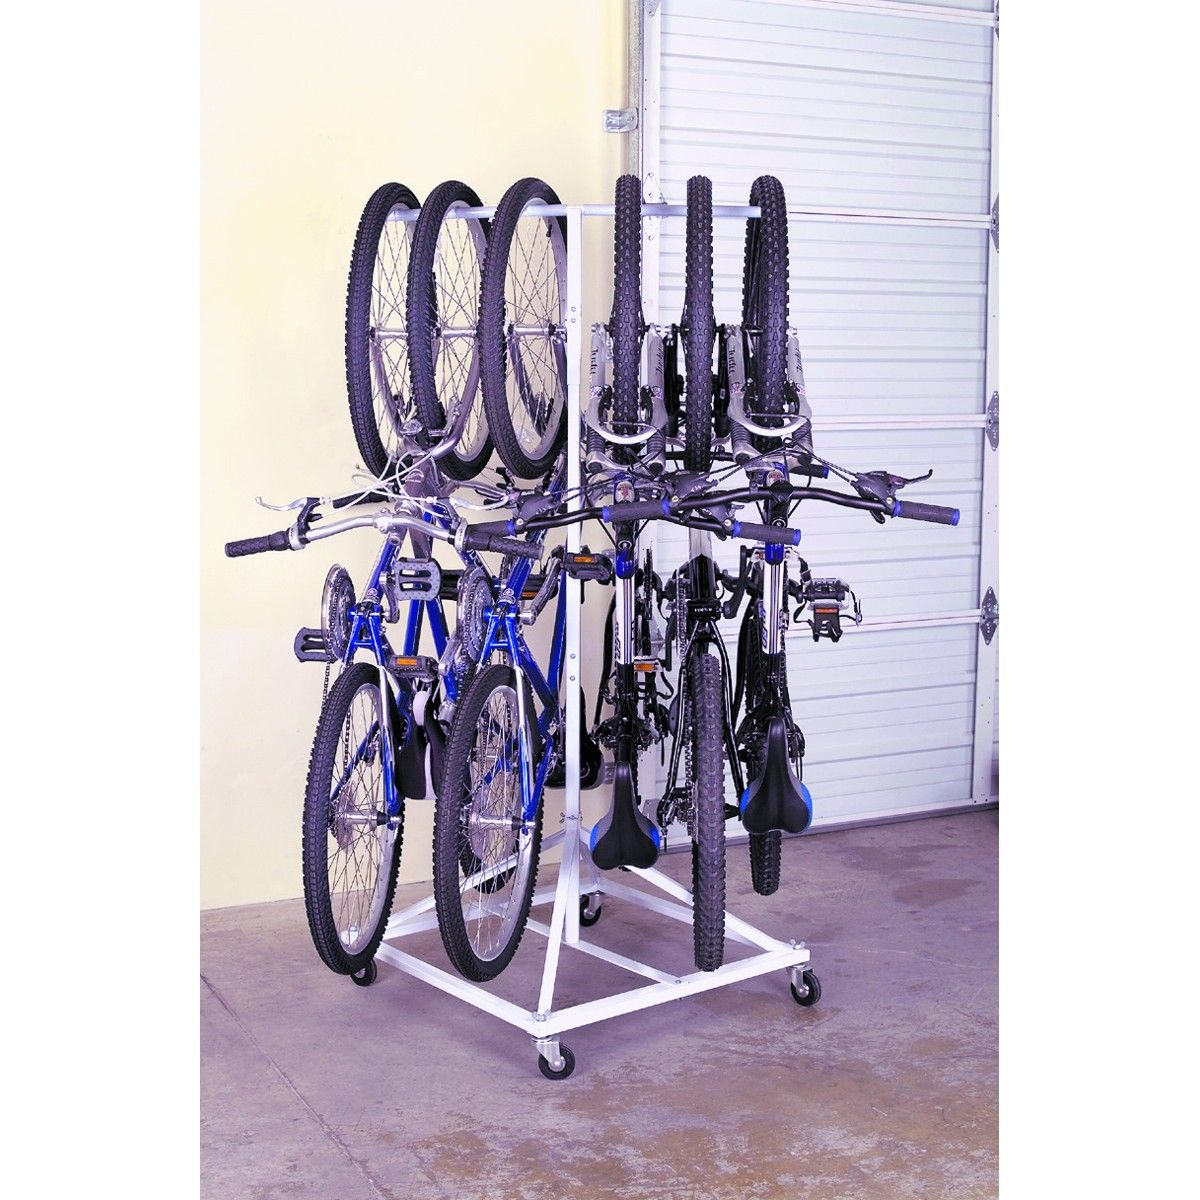 2628 Cycle Tree Compact Bike Storage $40 at Harbor Freight  sc 1 st  Pinterest : mobile bike storage  - Aquiesqueretaro.Com